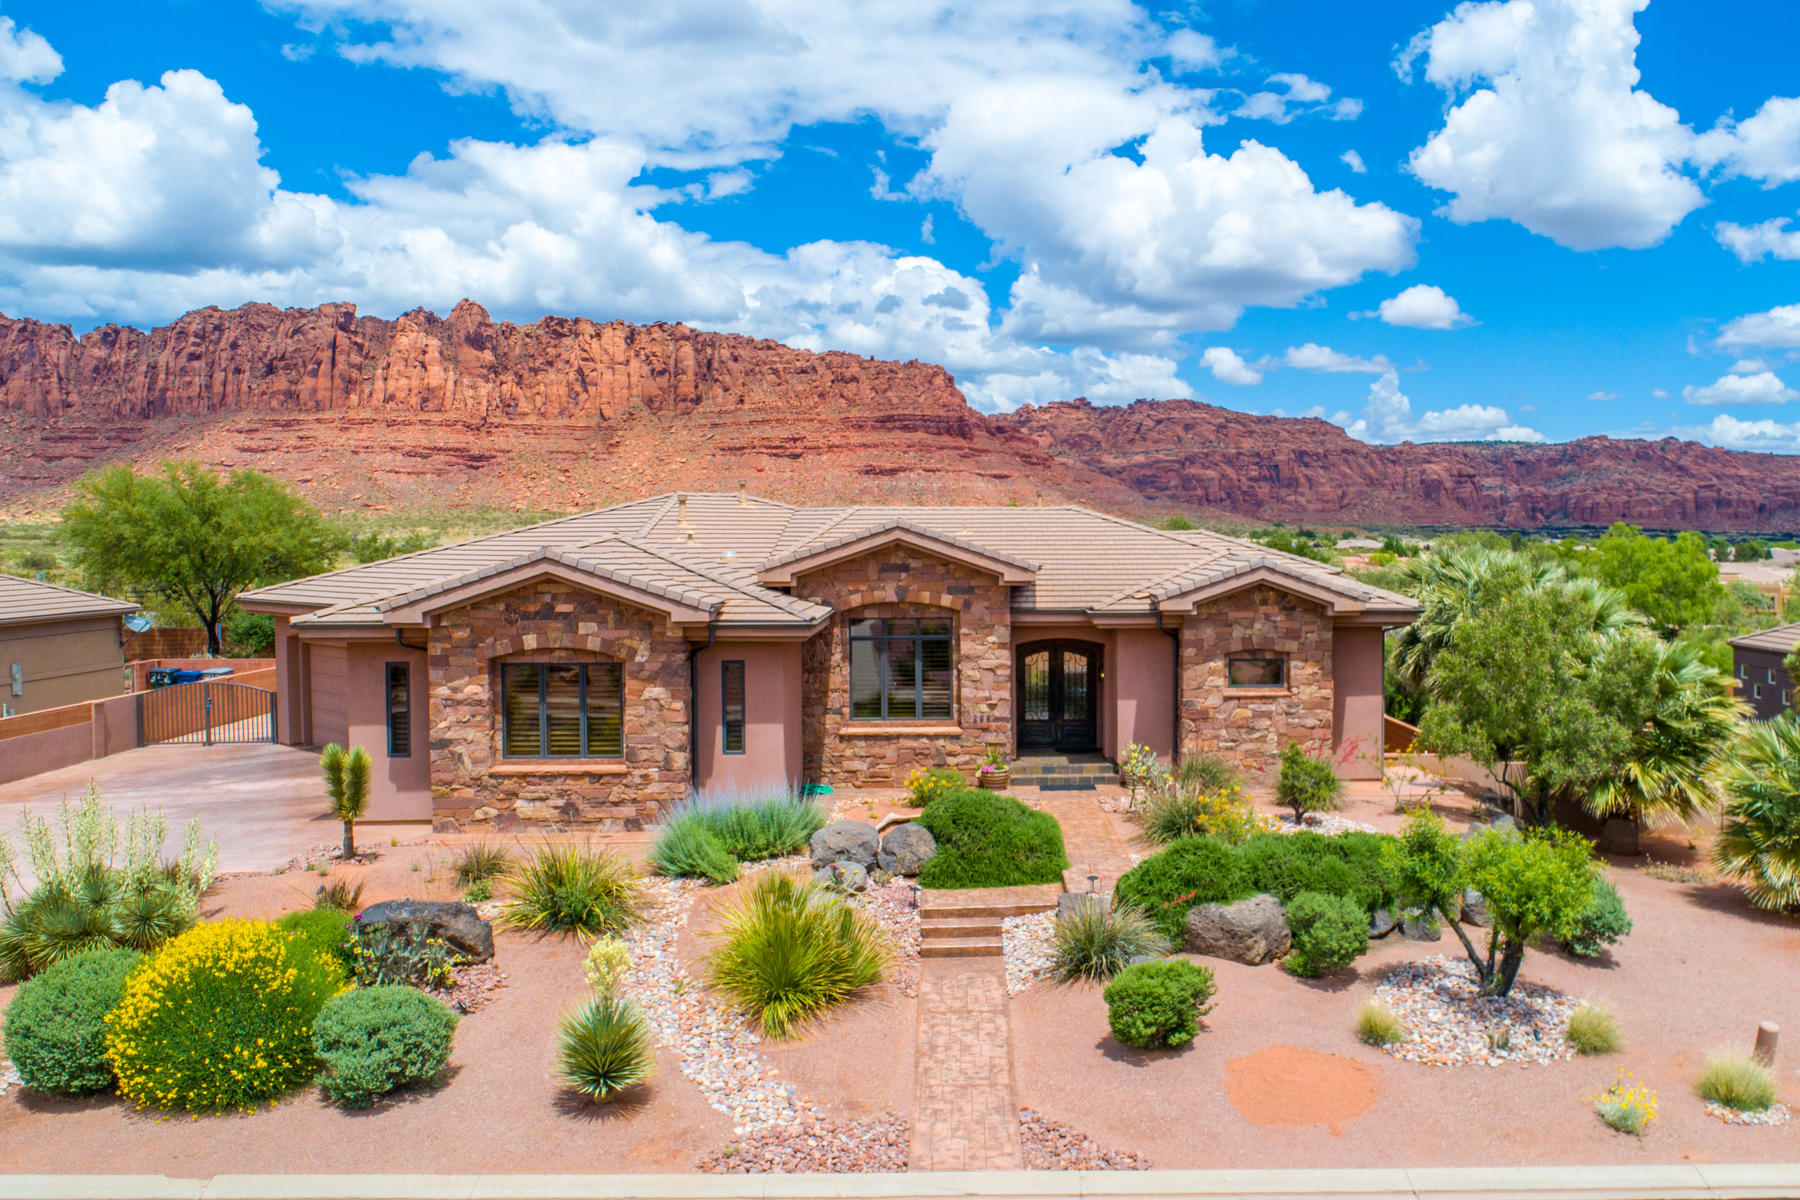 Single Family Homes for Active at Covated Citadel 294 N Painted Hills Dr Ivins, Utah 84738 United States